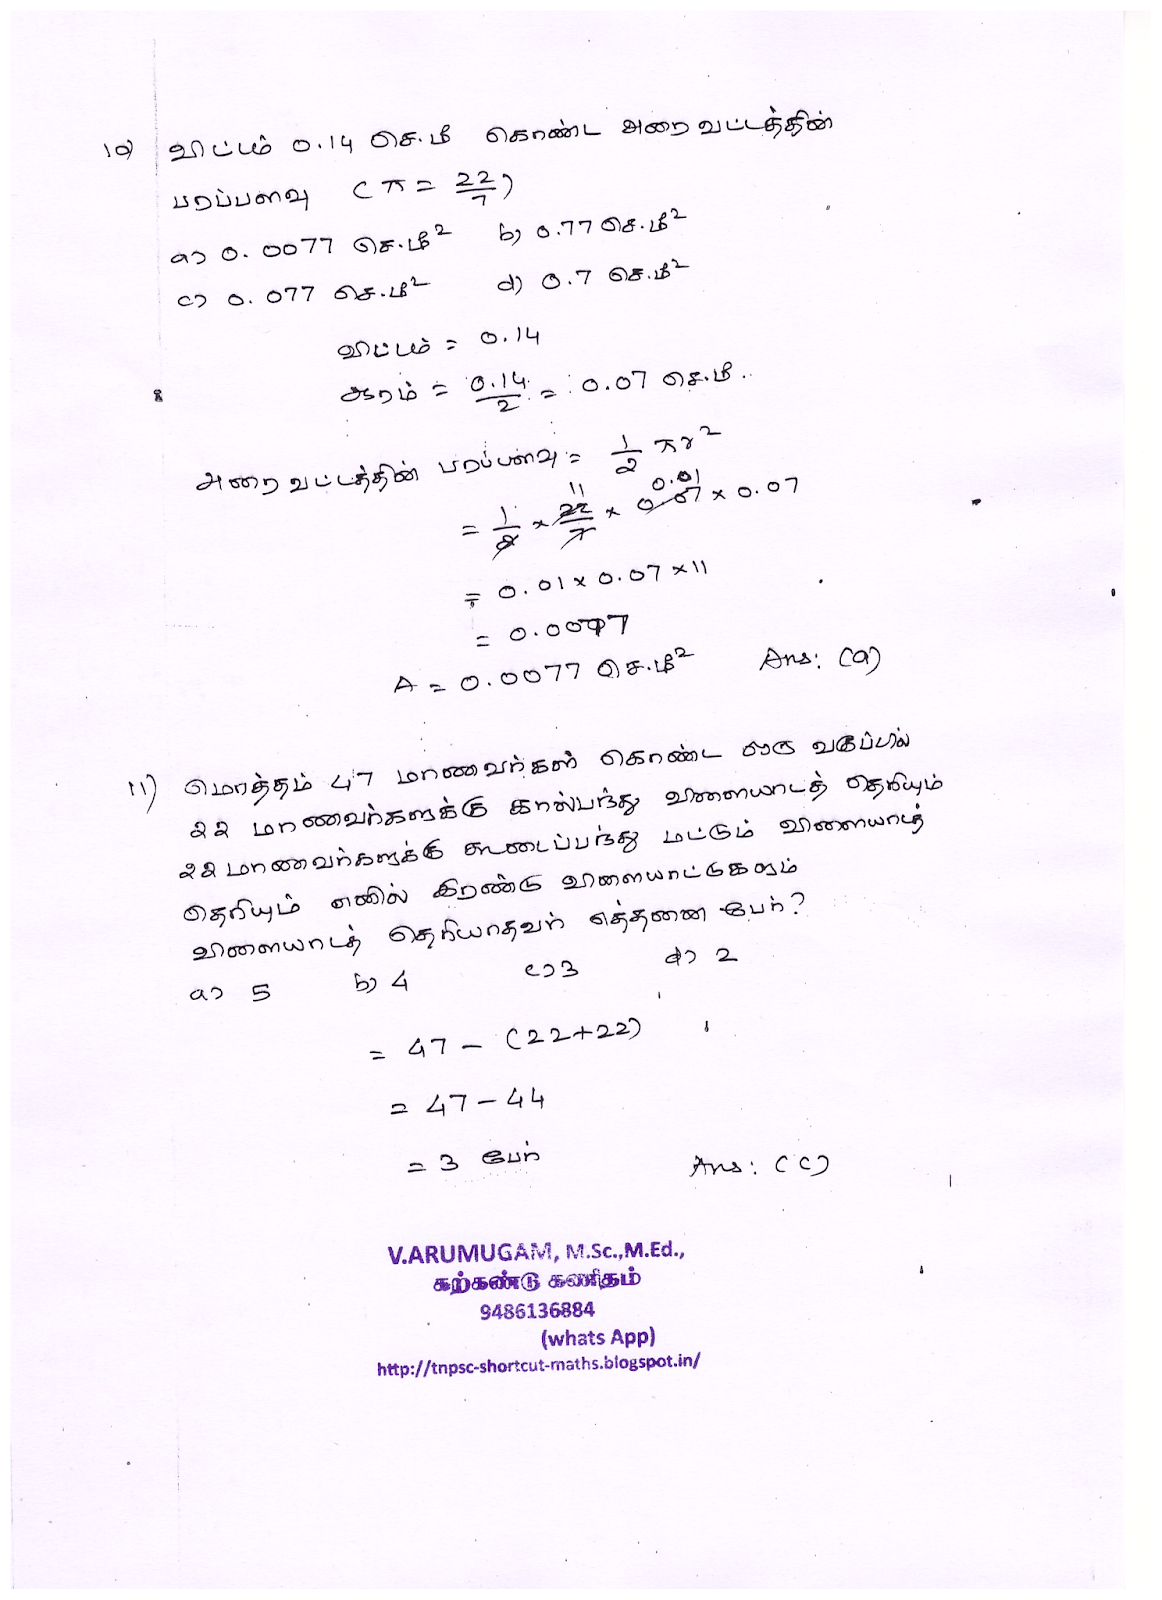 TNPSC – 2019 - Librarian in Archaeology Department in TN General Subordinate Service, 2016-17 EXAM - EXAM DATE: 31.03.2019